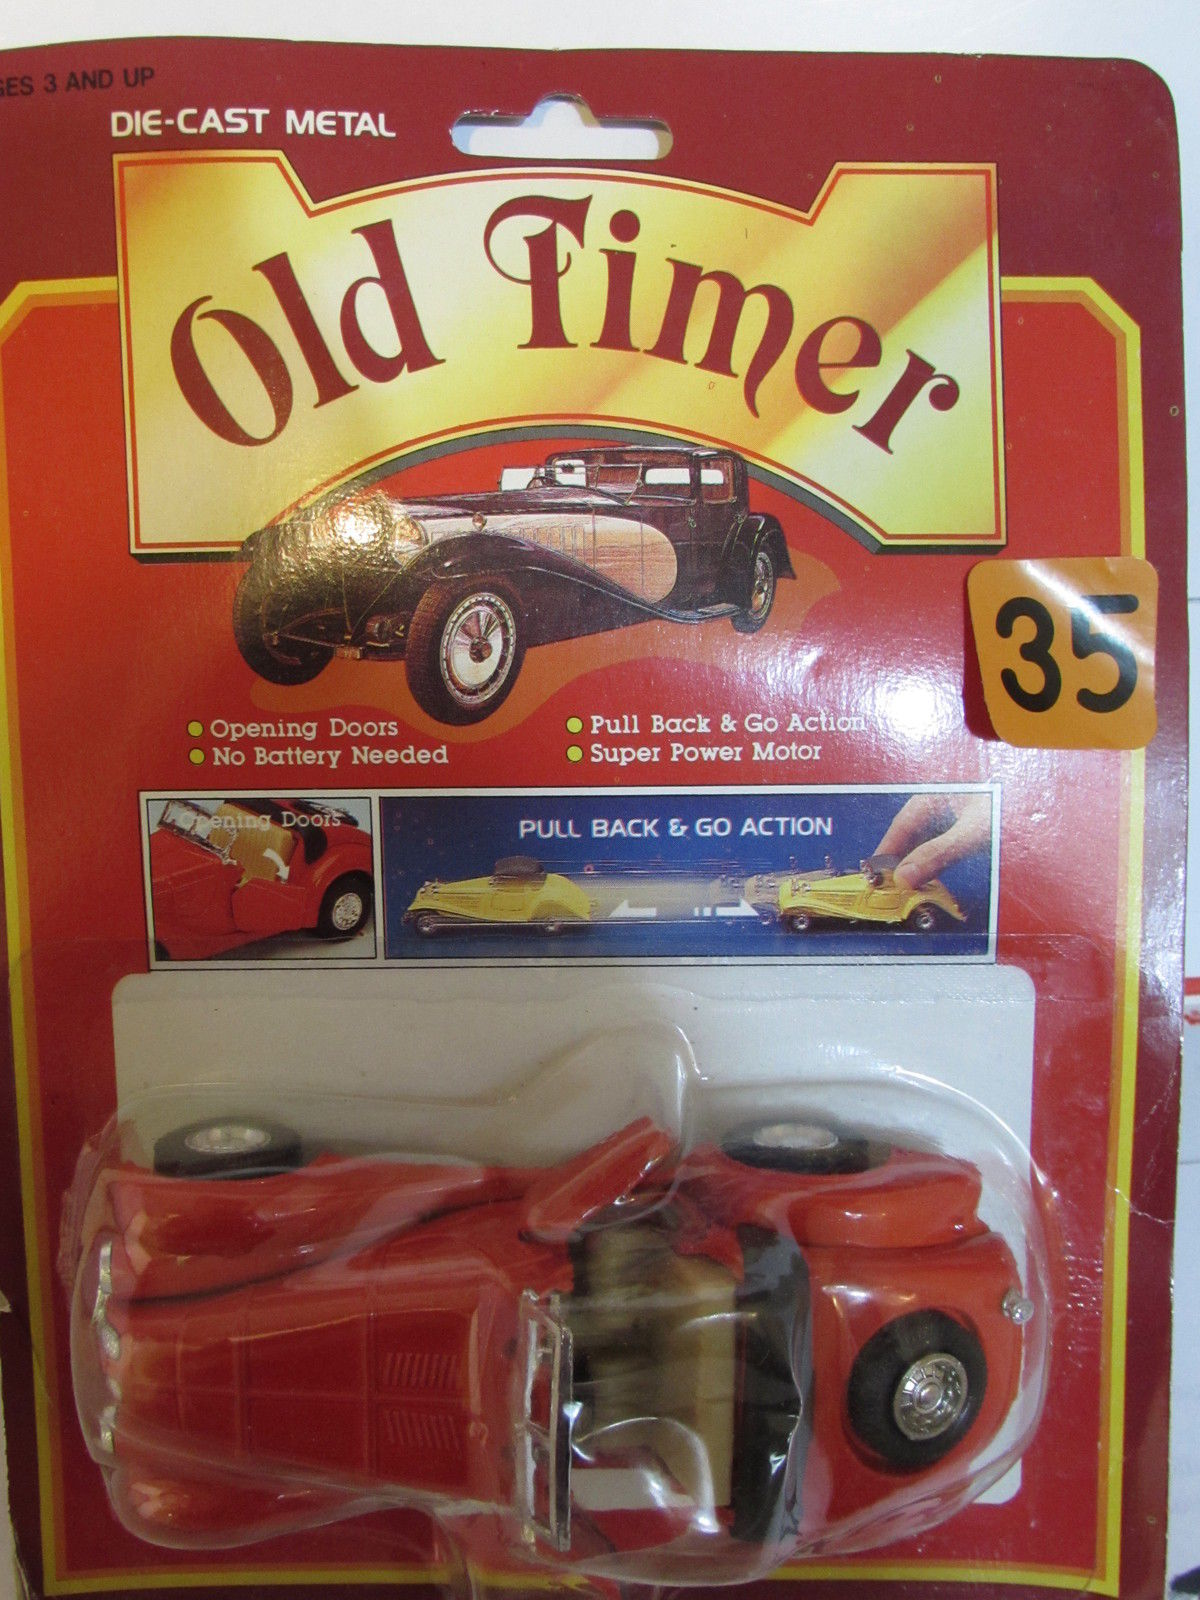 OLD TIMER DIE CAST METAL - PULL BACK & GO ACTION